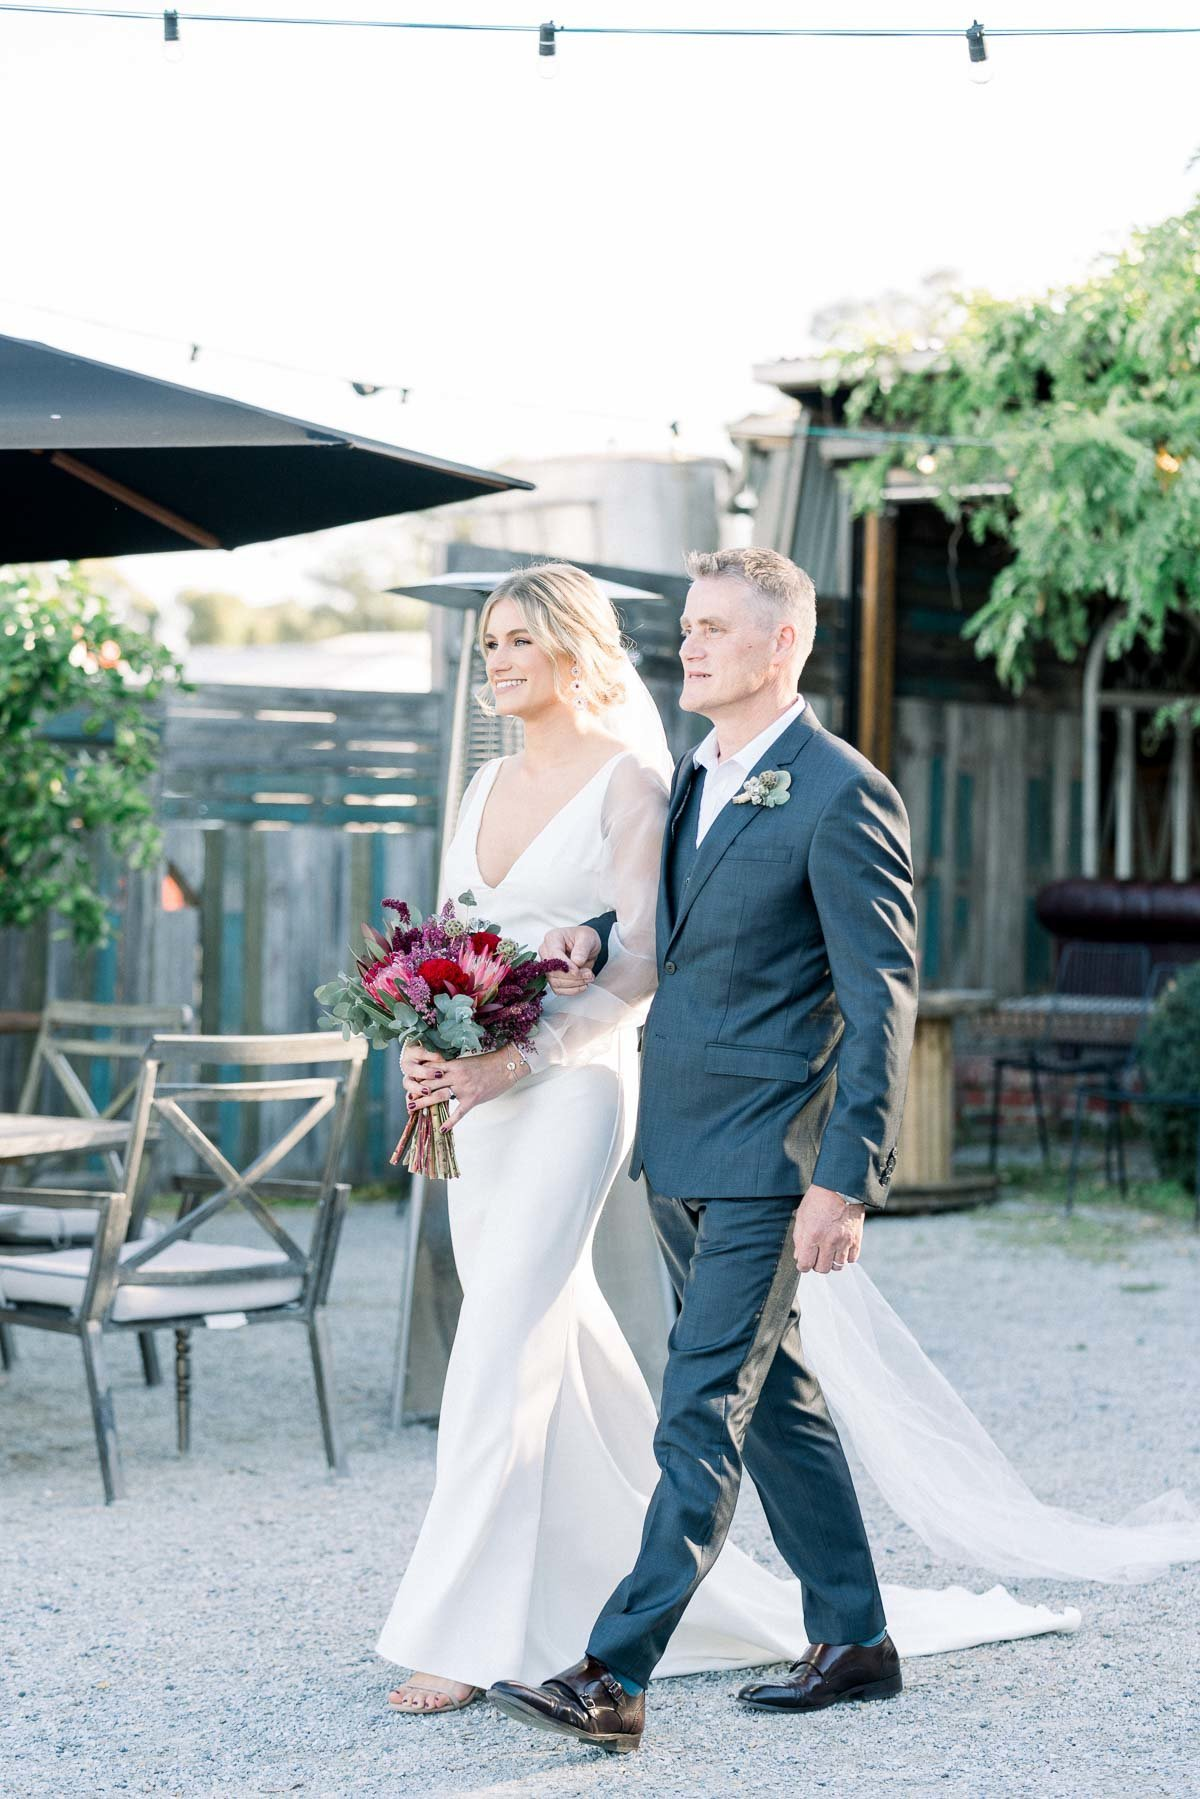 rustic-yarra-valley-wedding-venue-acacia-ridge-georgia-james-08017